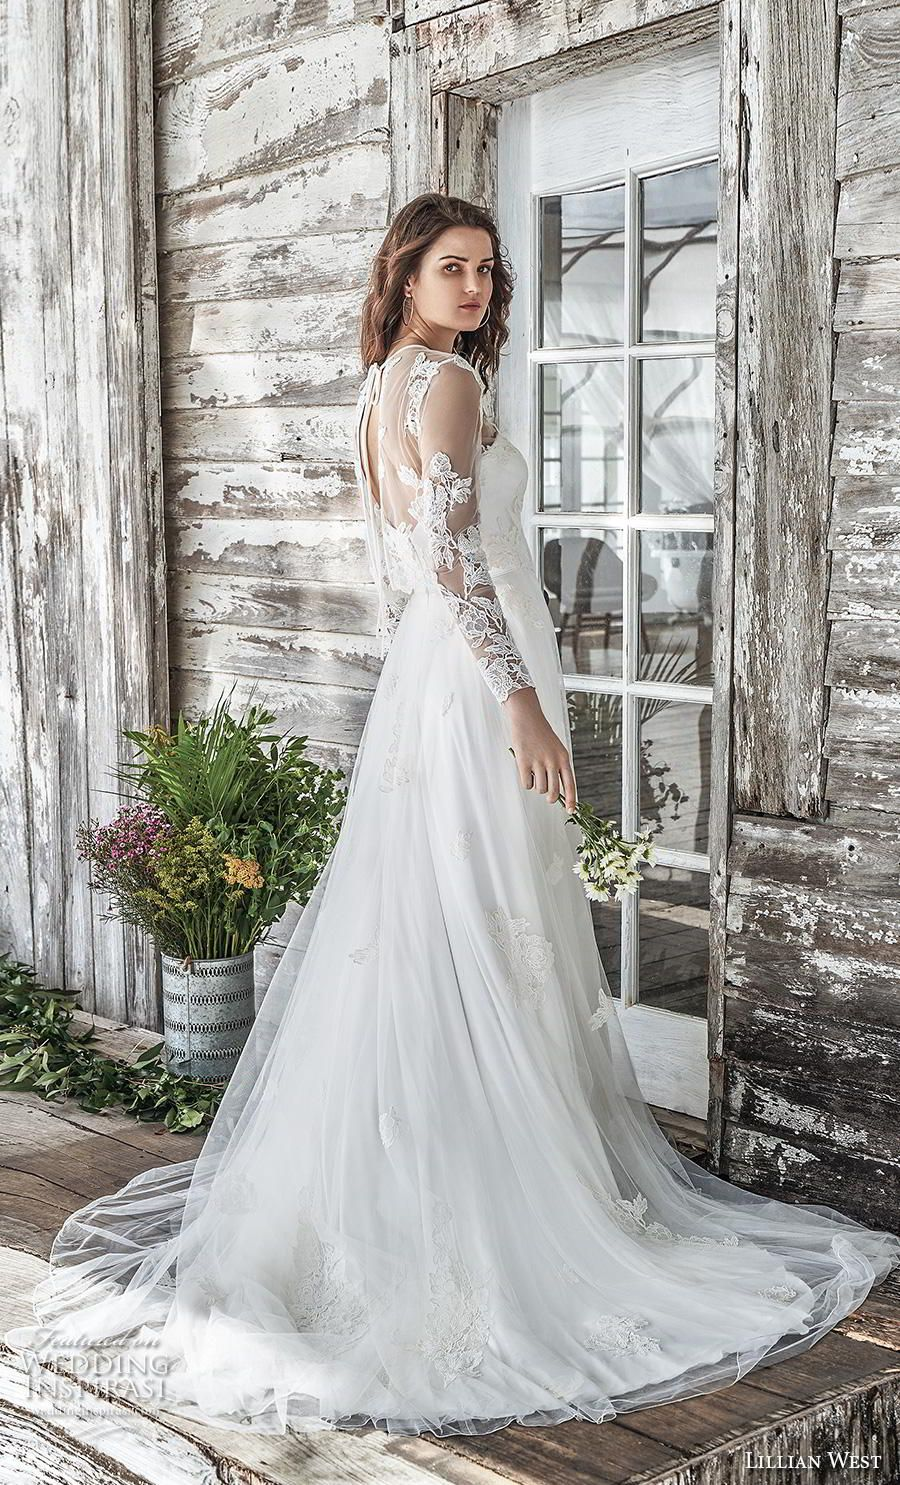 27a4274869 lillian west spring 2019 bridal long seeves illusion jewel sweetheart  neckline heavily embellished bodice romantic a